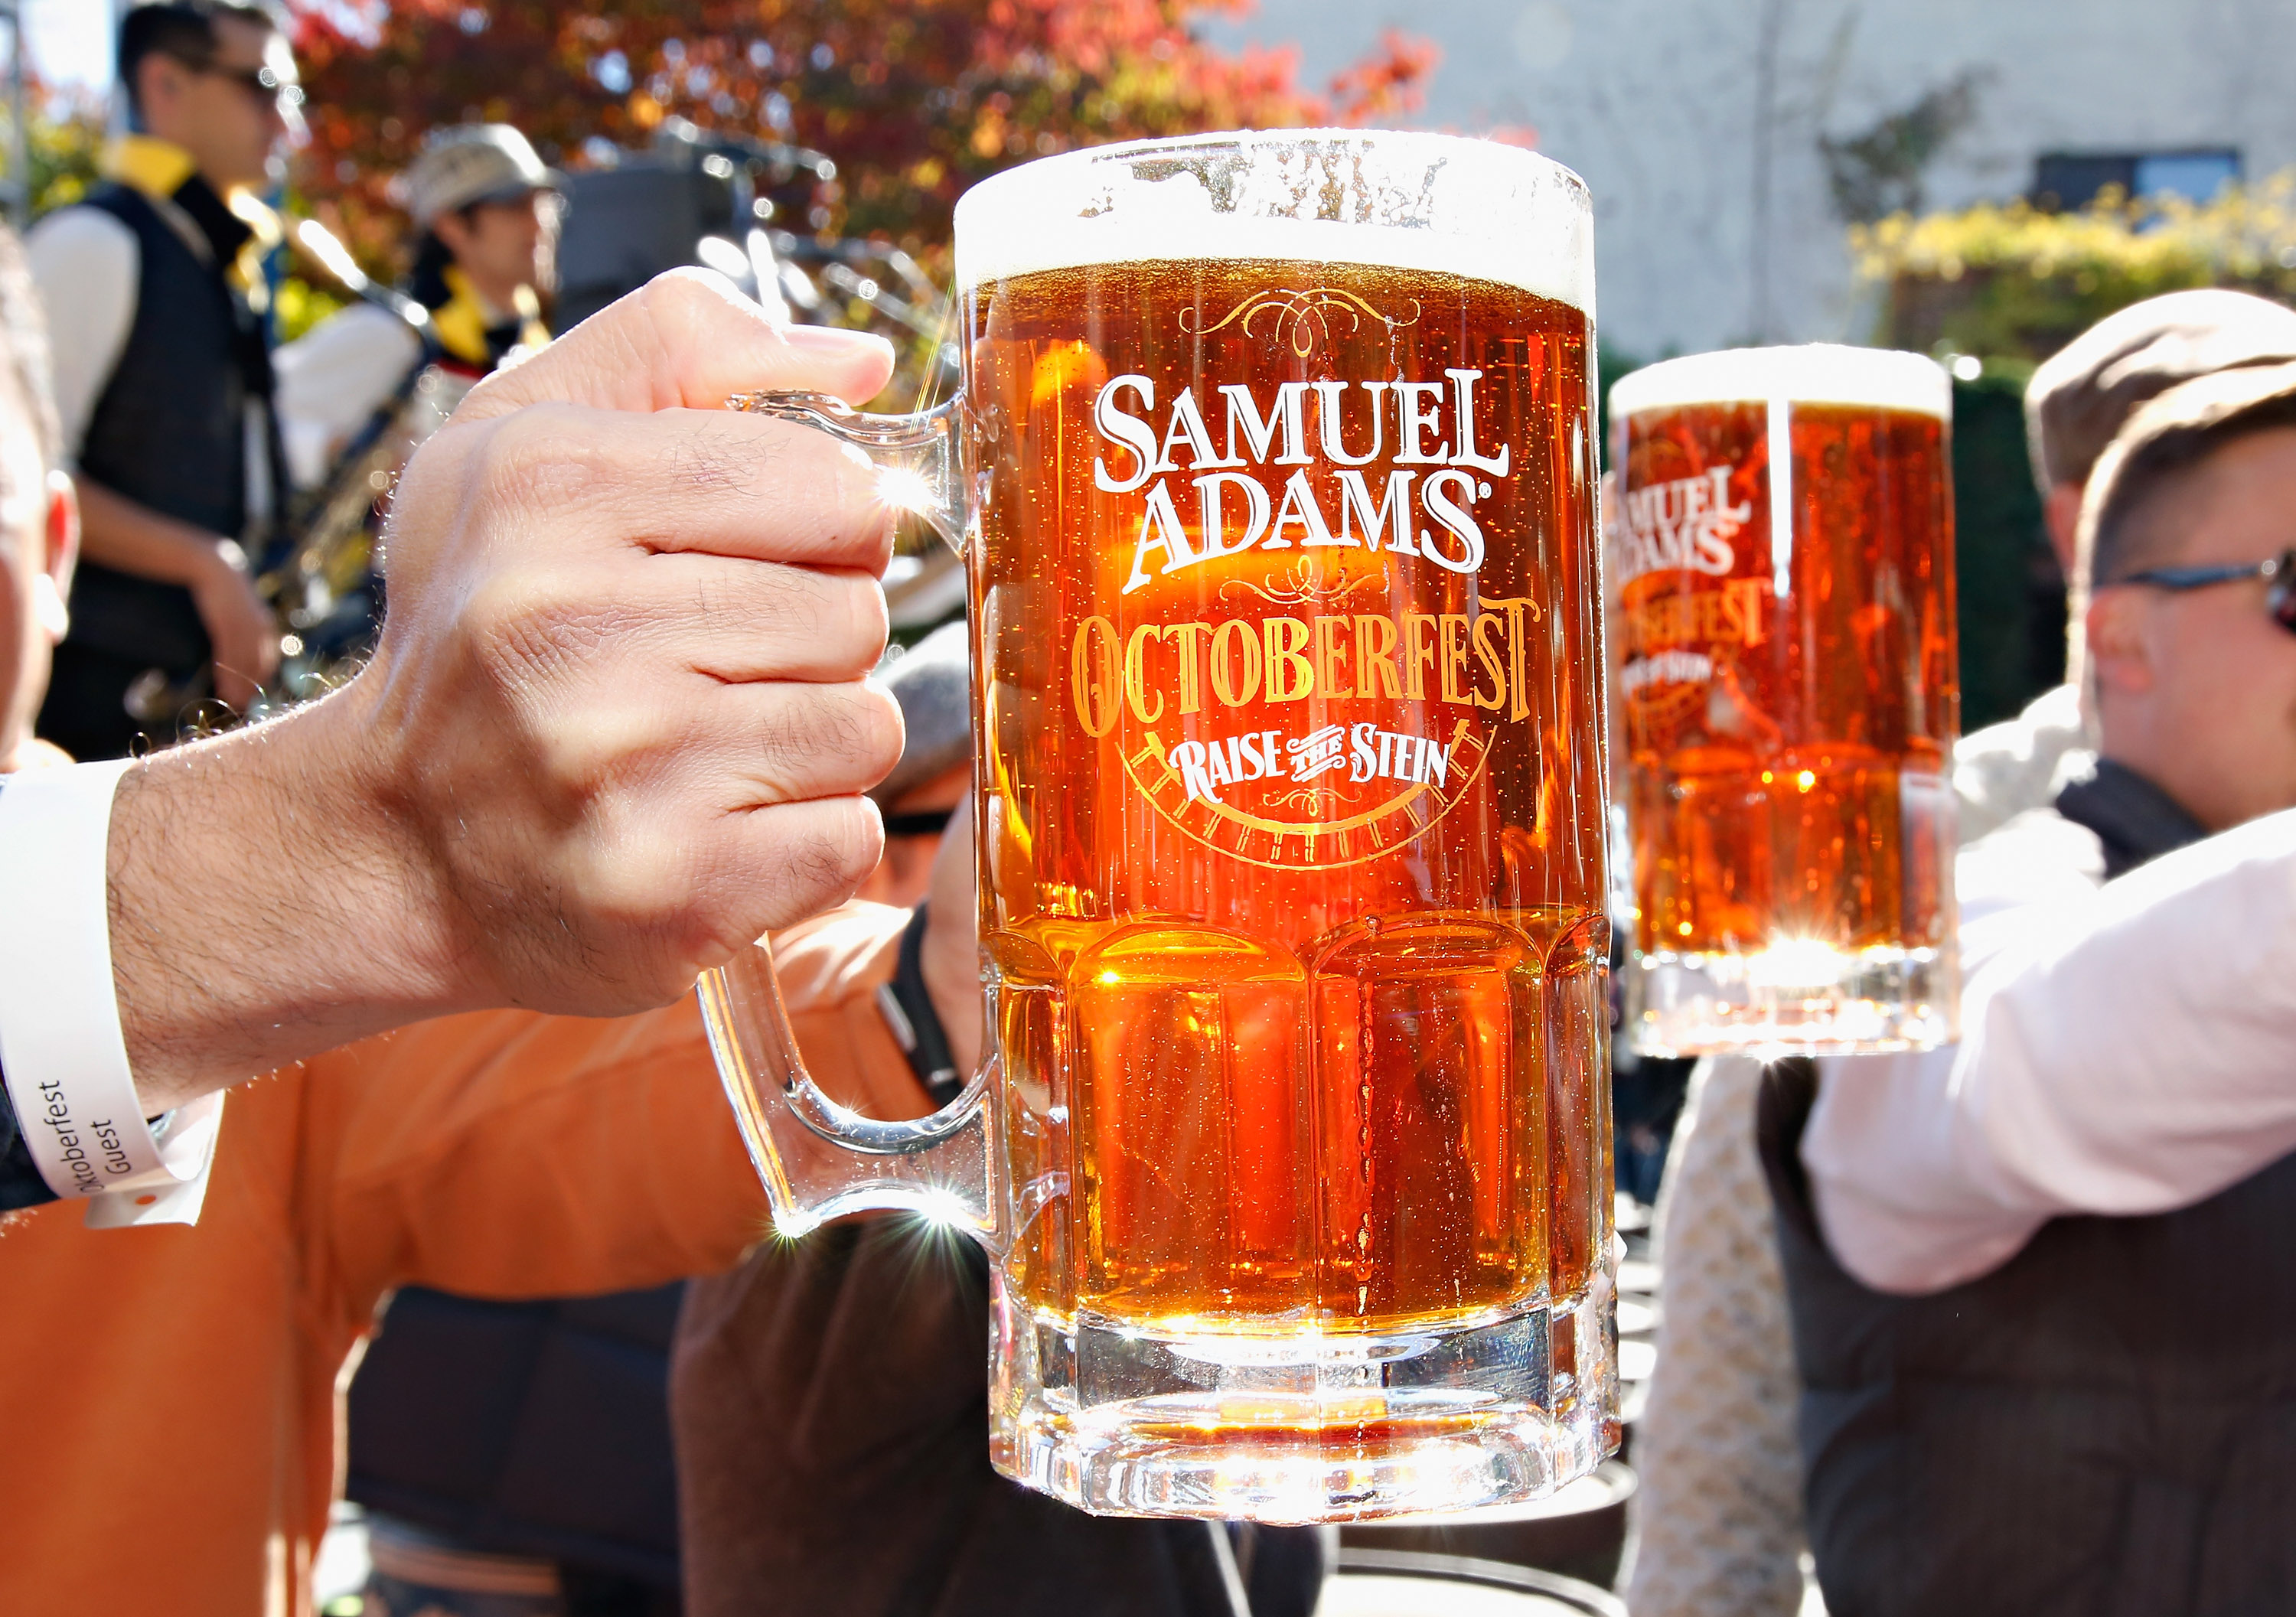 A view of Samuel Adams at Oktoberfest sponsored by The Village Voice presented by Jagermeister hosted by Andrew Zimmern during the Food Network New York City Wine & Food Festival Presented By FOOD & WINE at Studio Square on October 19, 2014 in New York City.